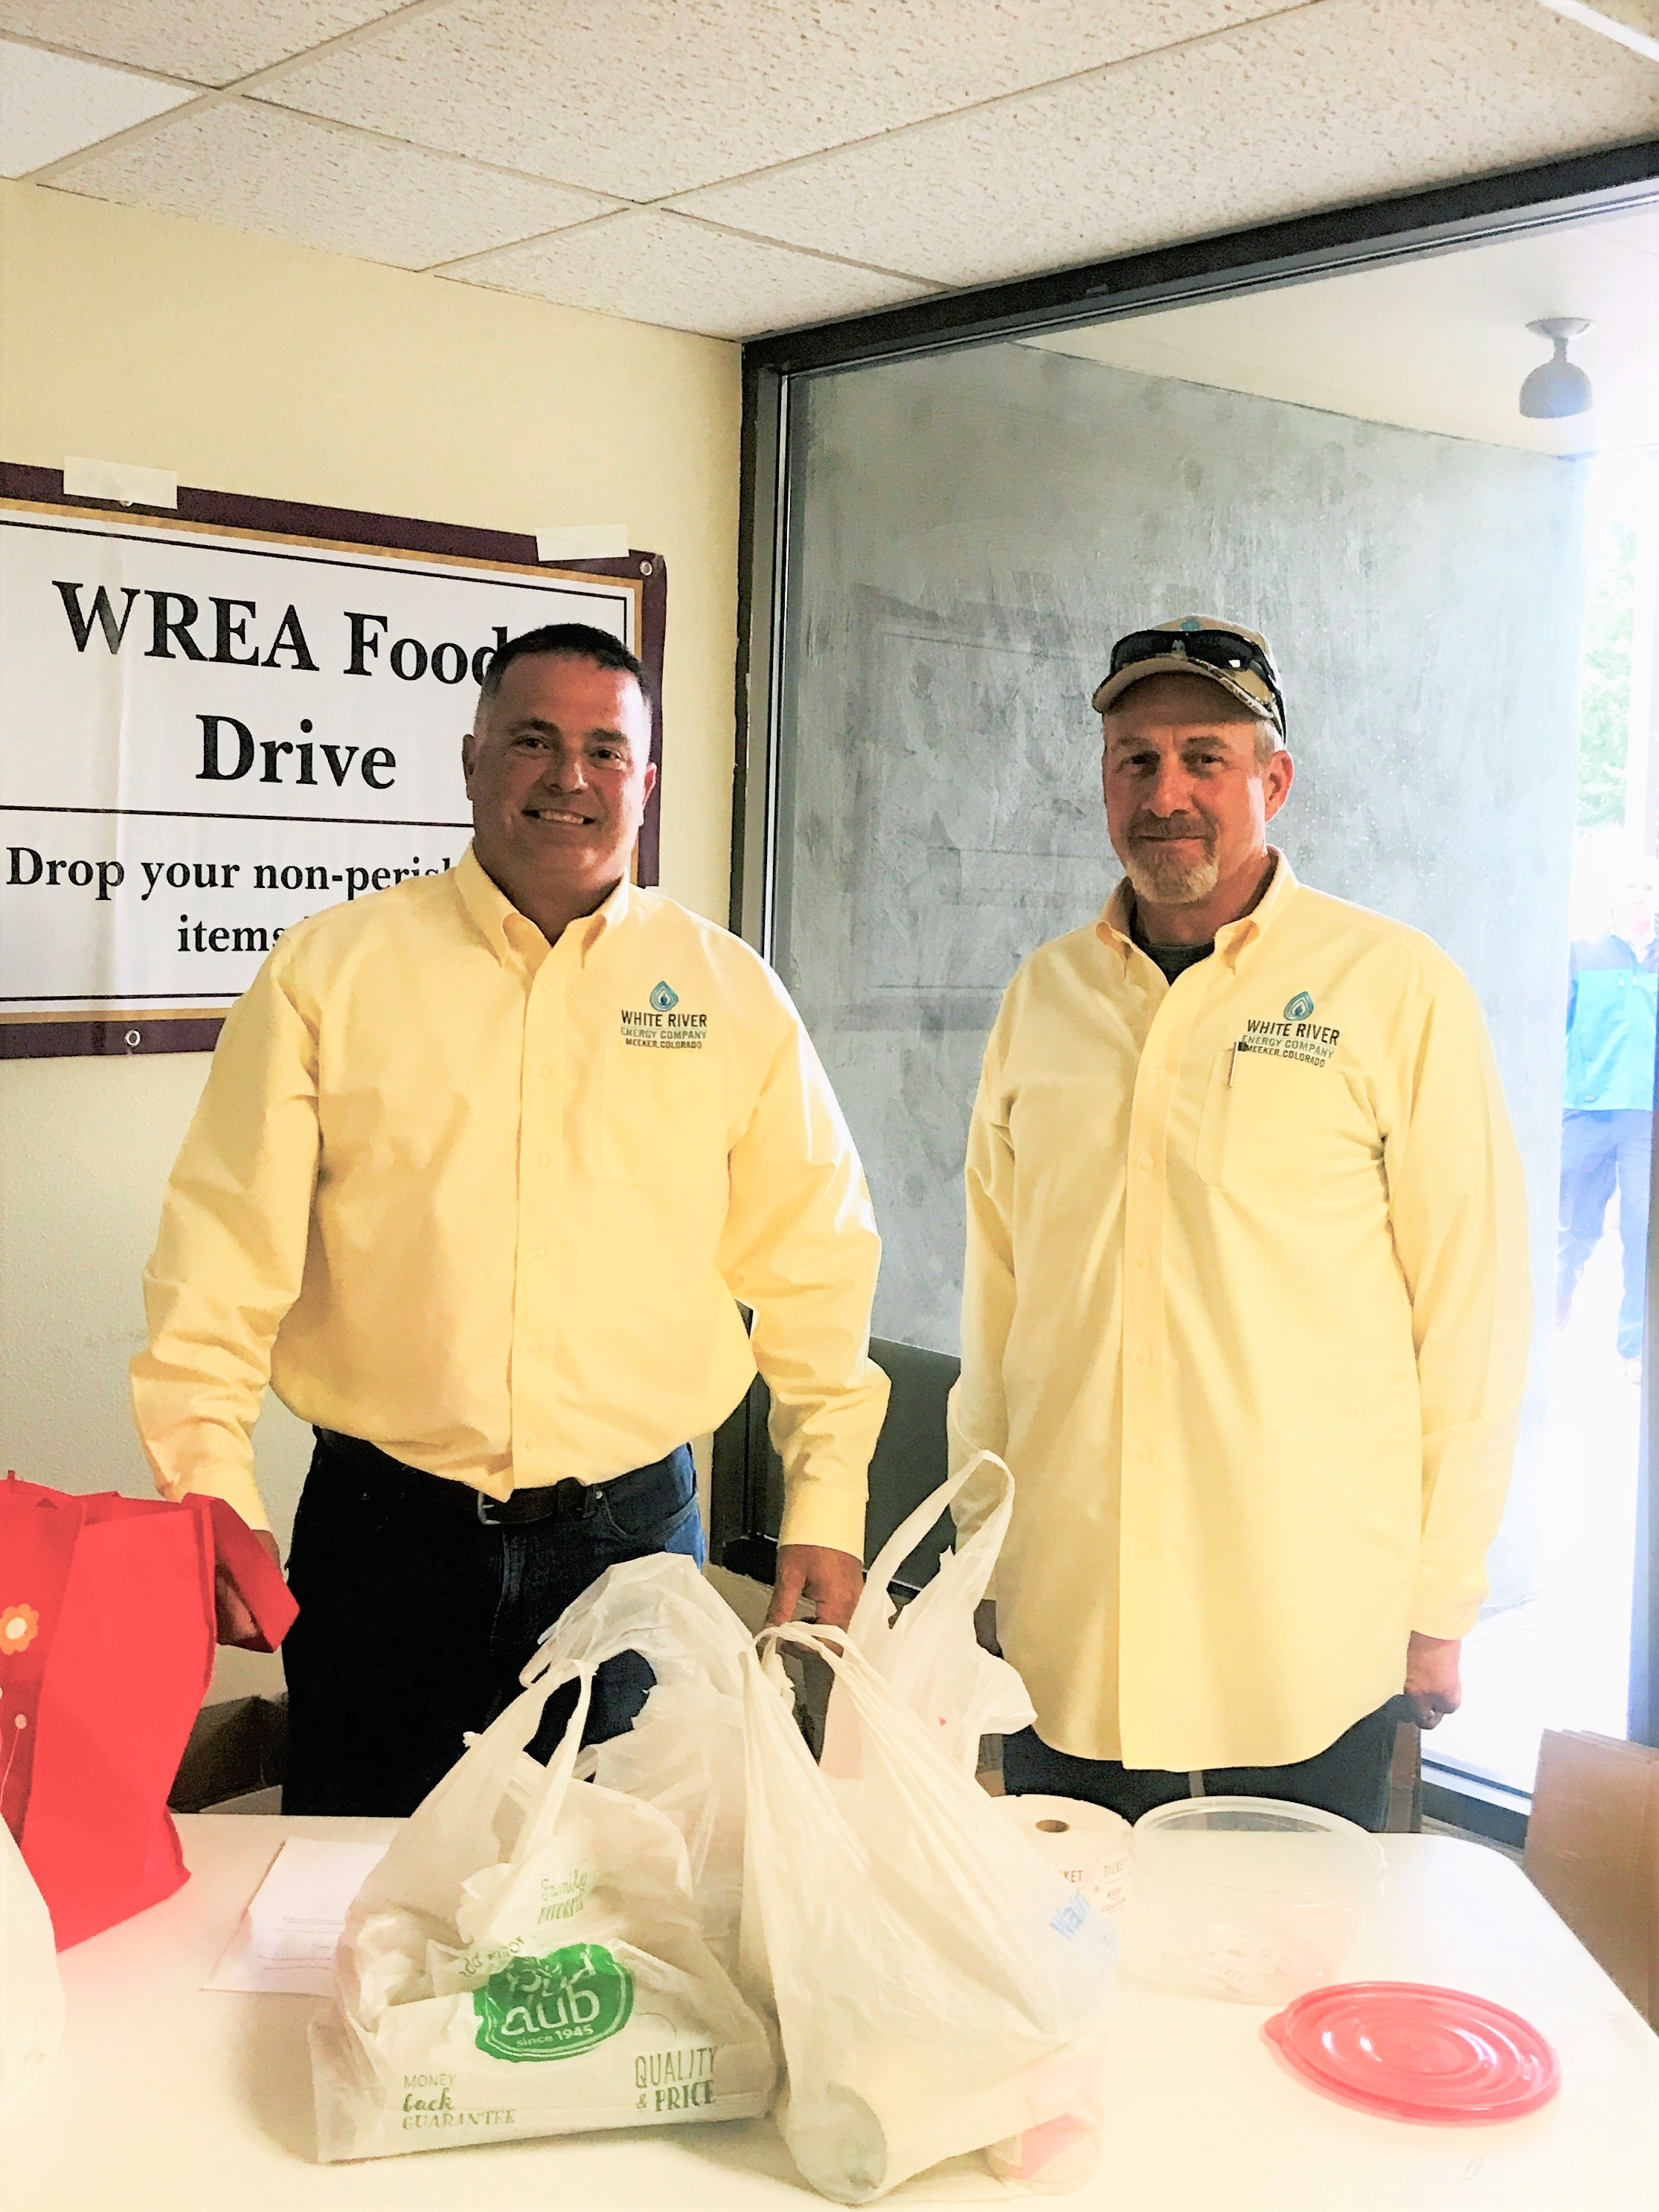 WR Energy food drive